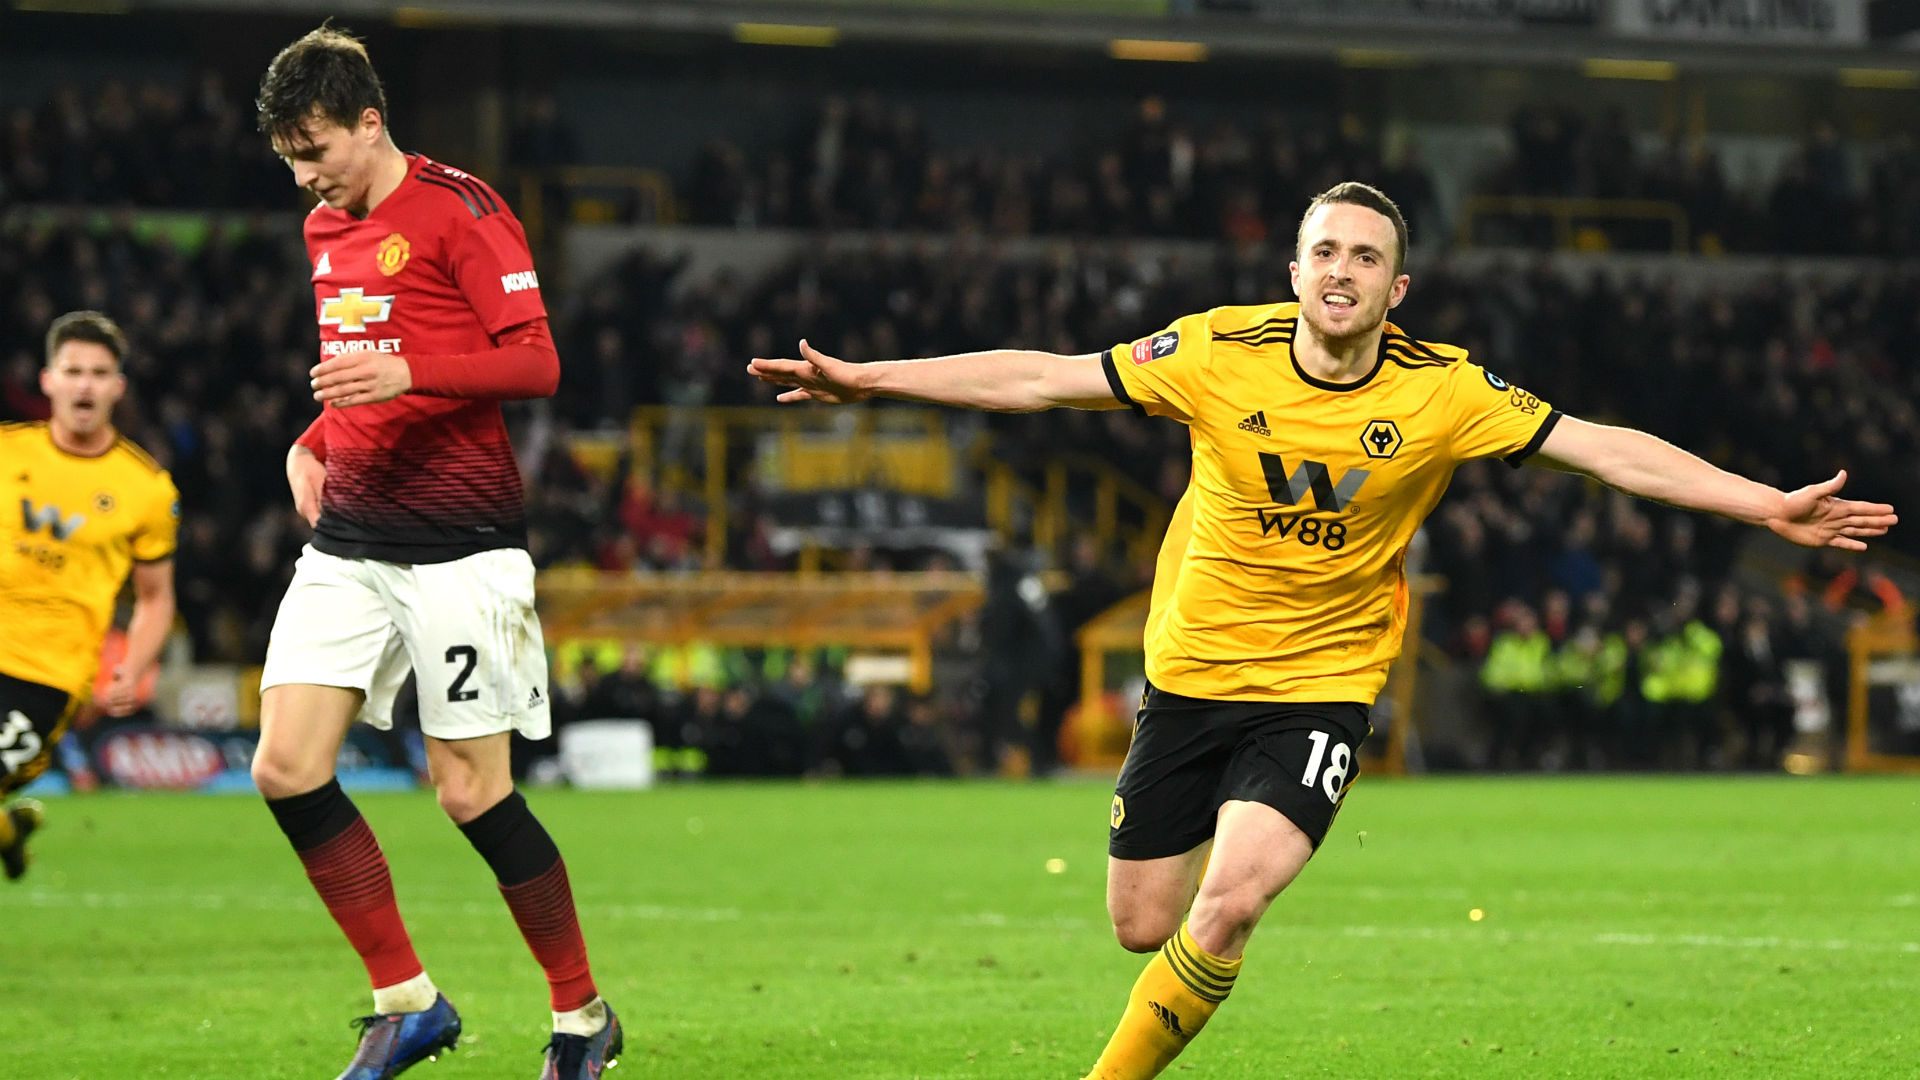 Wolves forward Diogo Jota celebrates after scoring against Man United. (Getty Images)